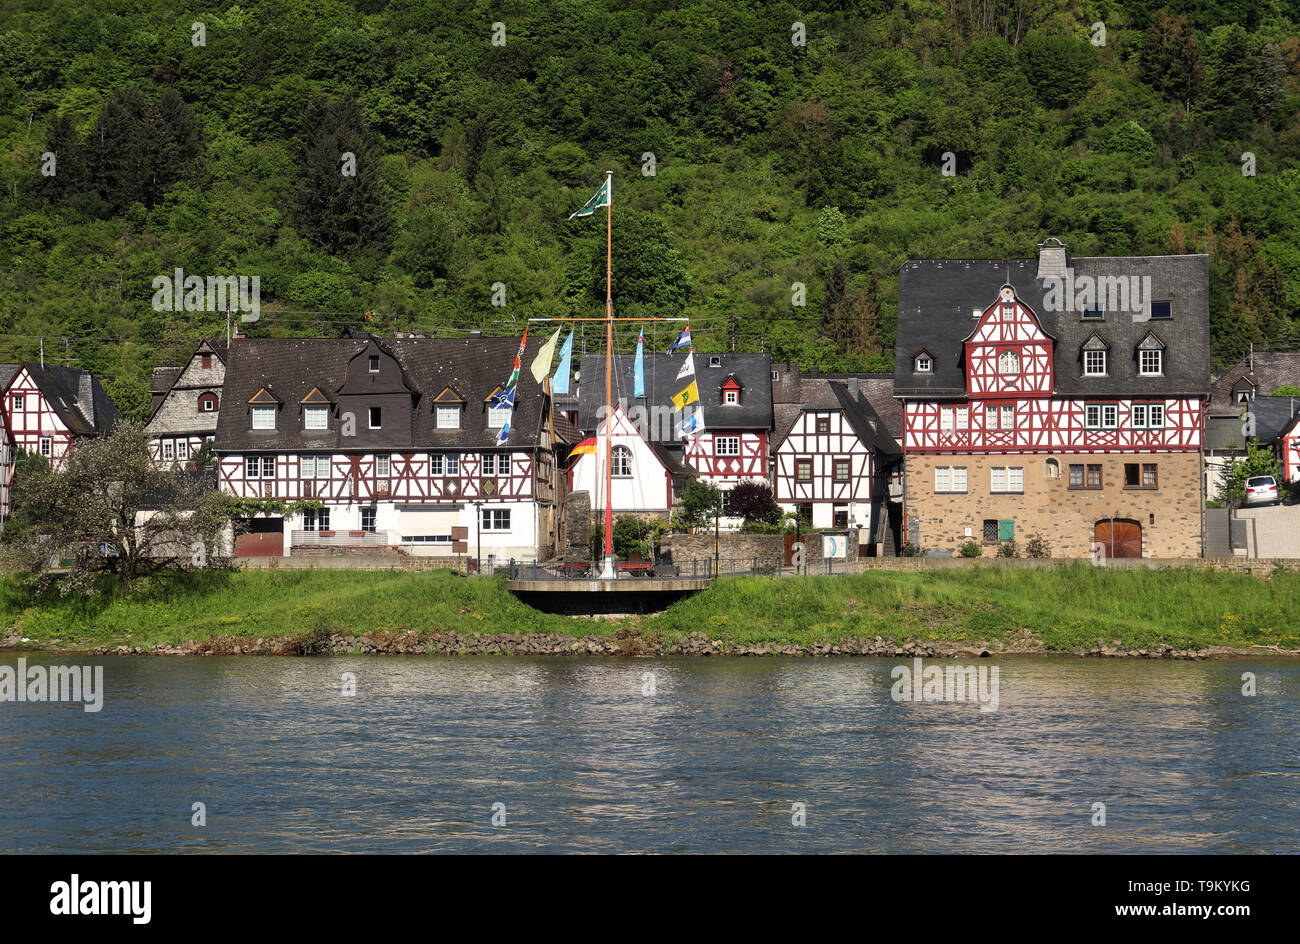 Riverside village on the Rhine river in Germany with tree covered Hill in the background - Stock Image